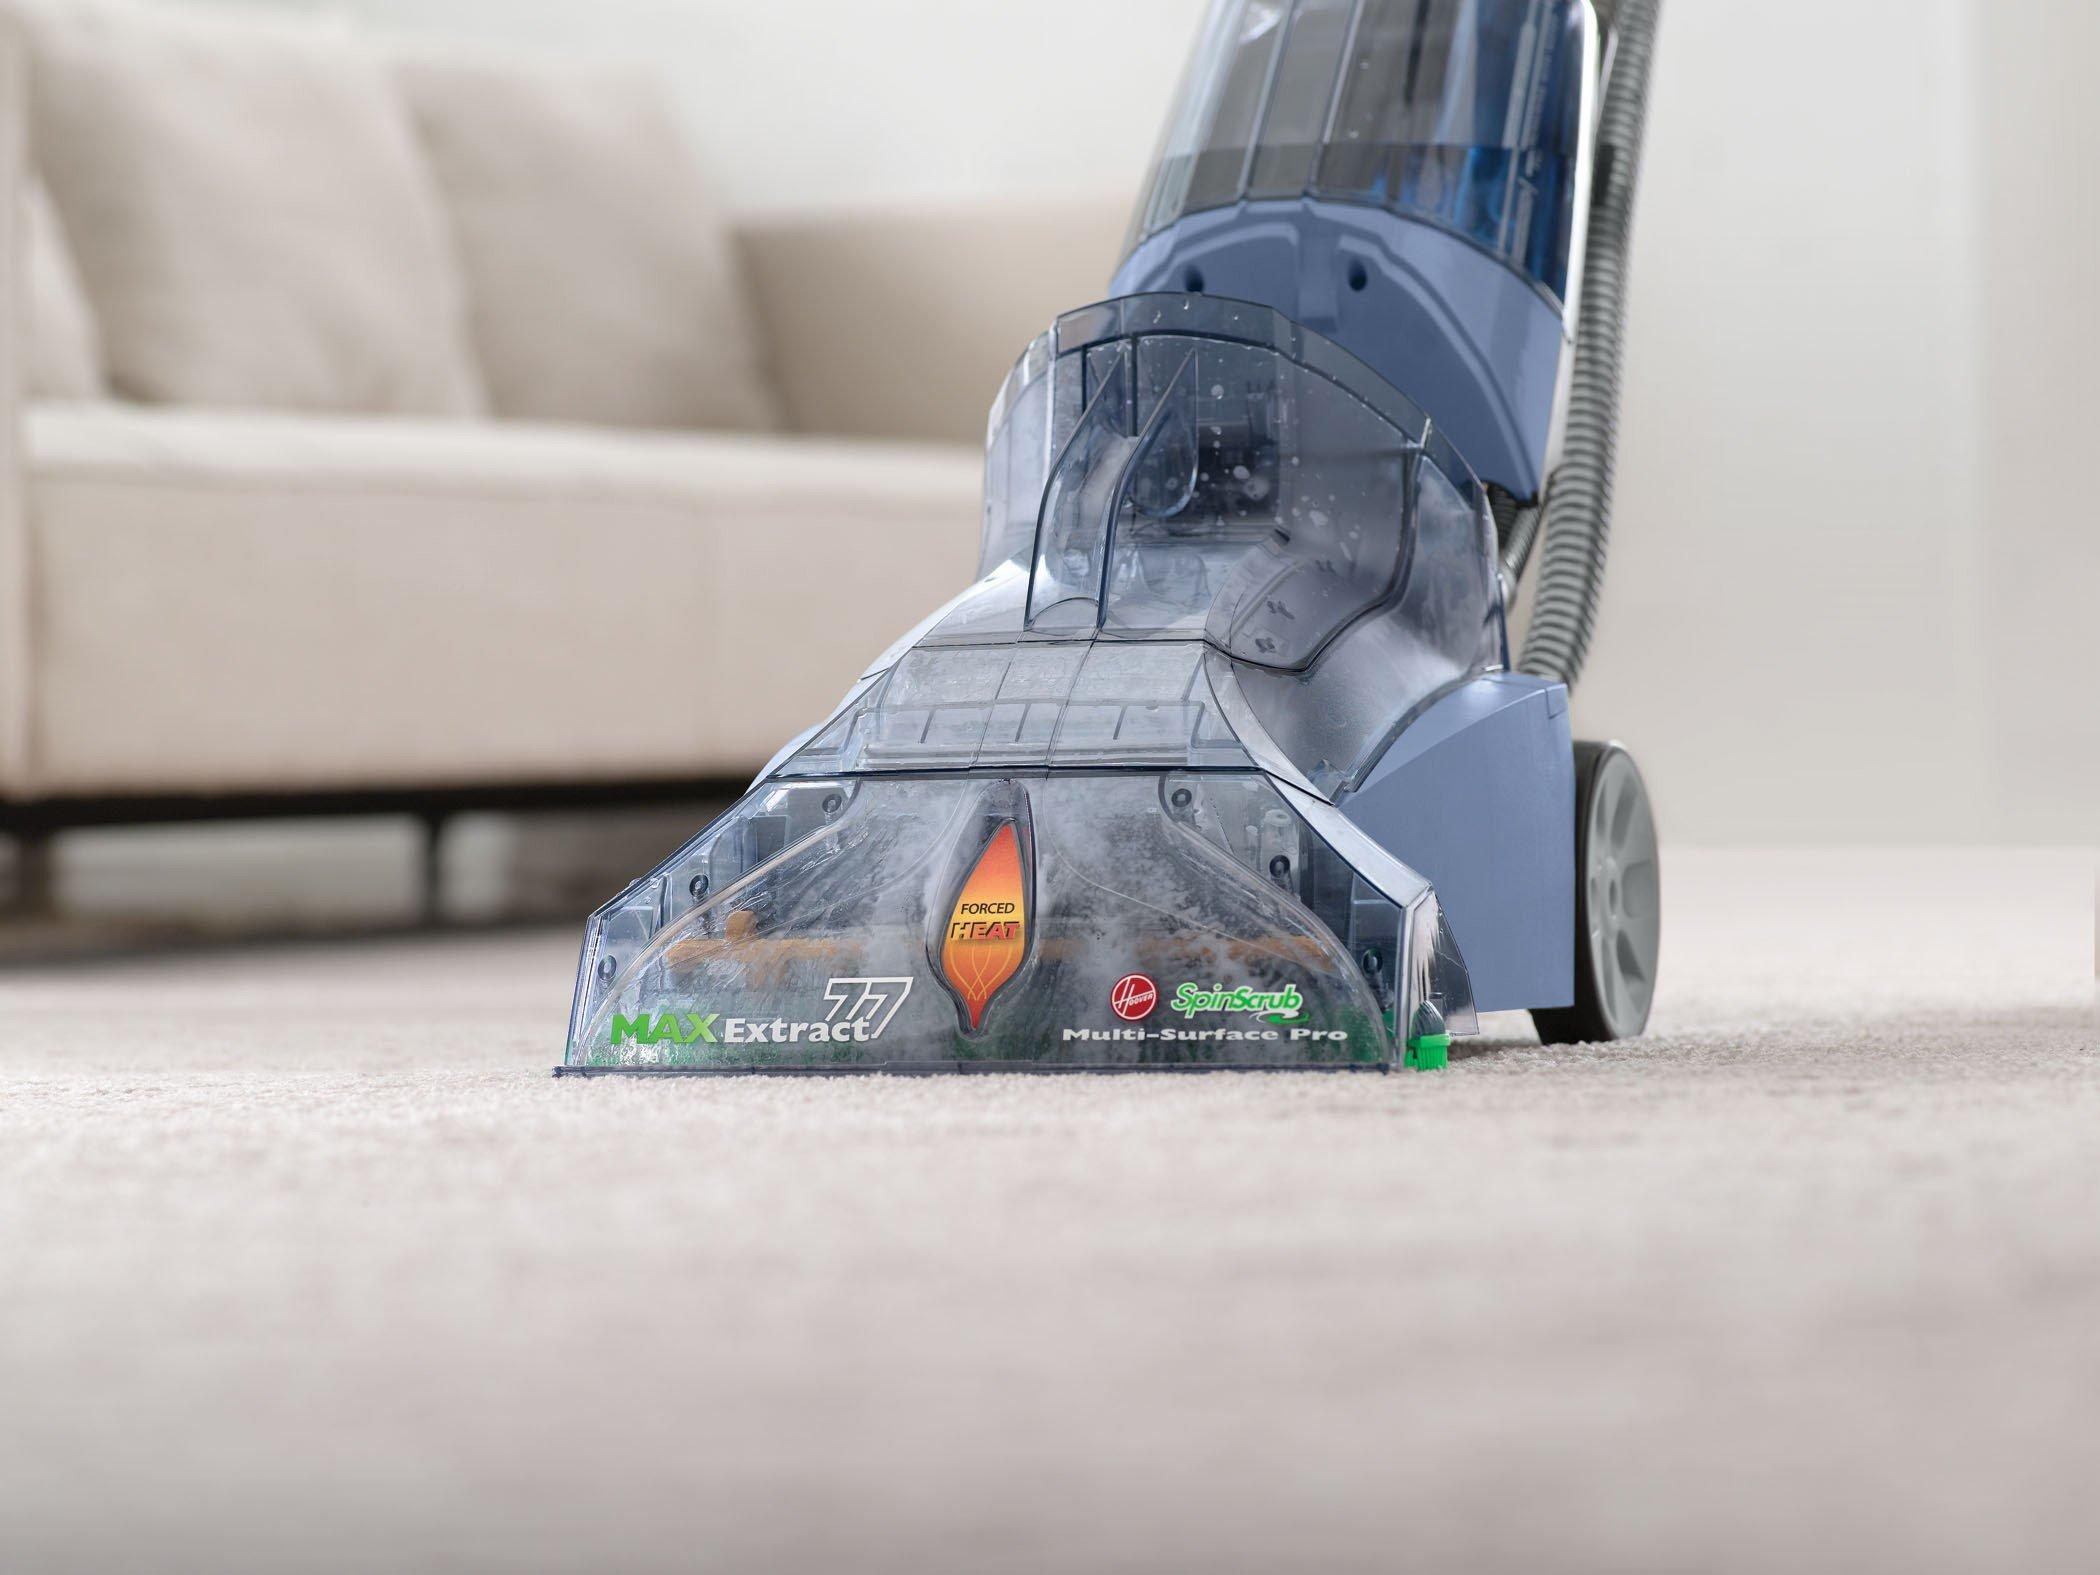 Reconditioned Max Extract 77 Hard Floor Cleaner2